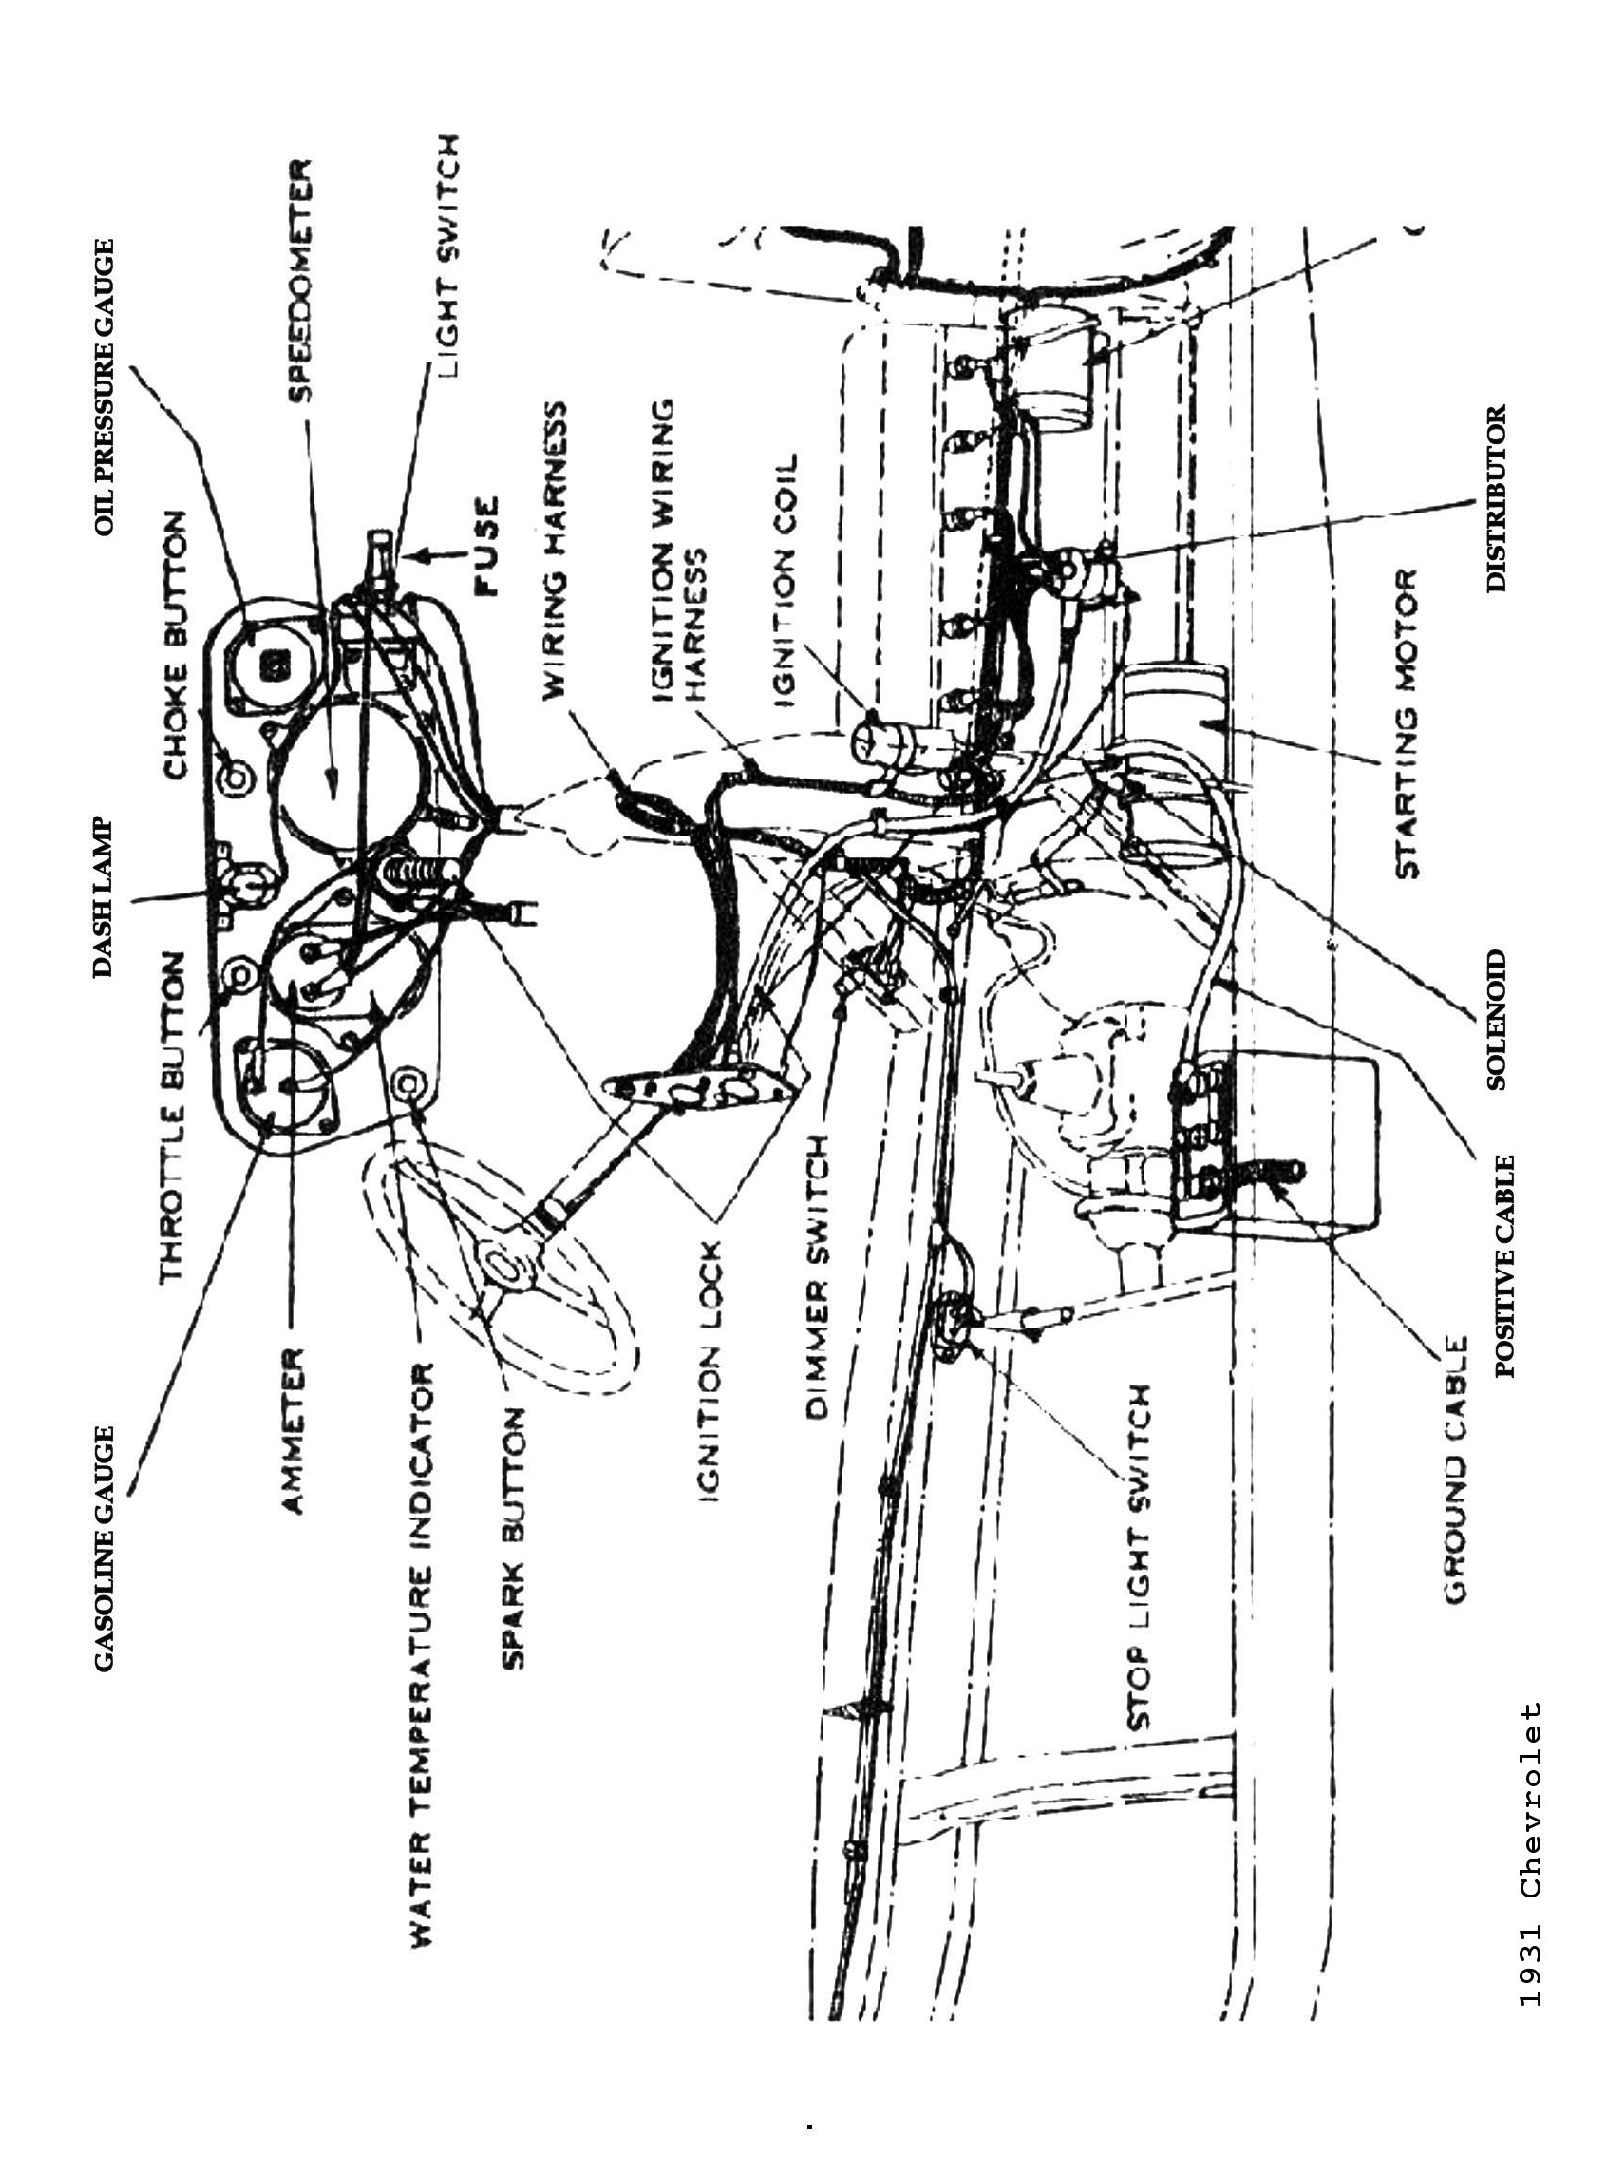 31harness chevy wiring diagrams wiring harness diagram at bakdesigns.co